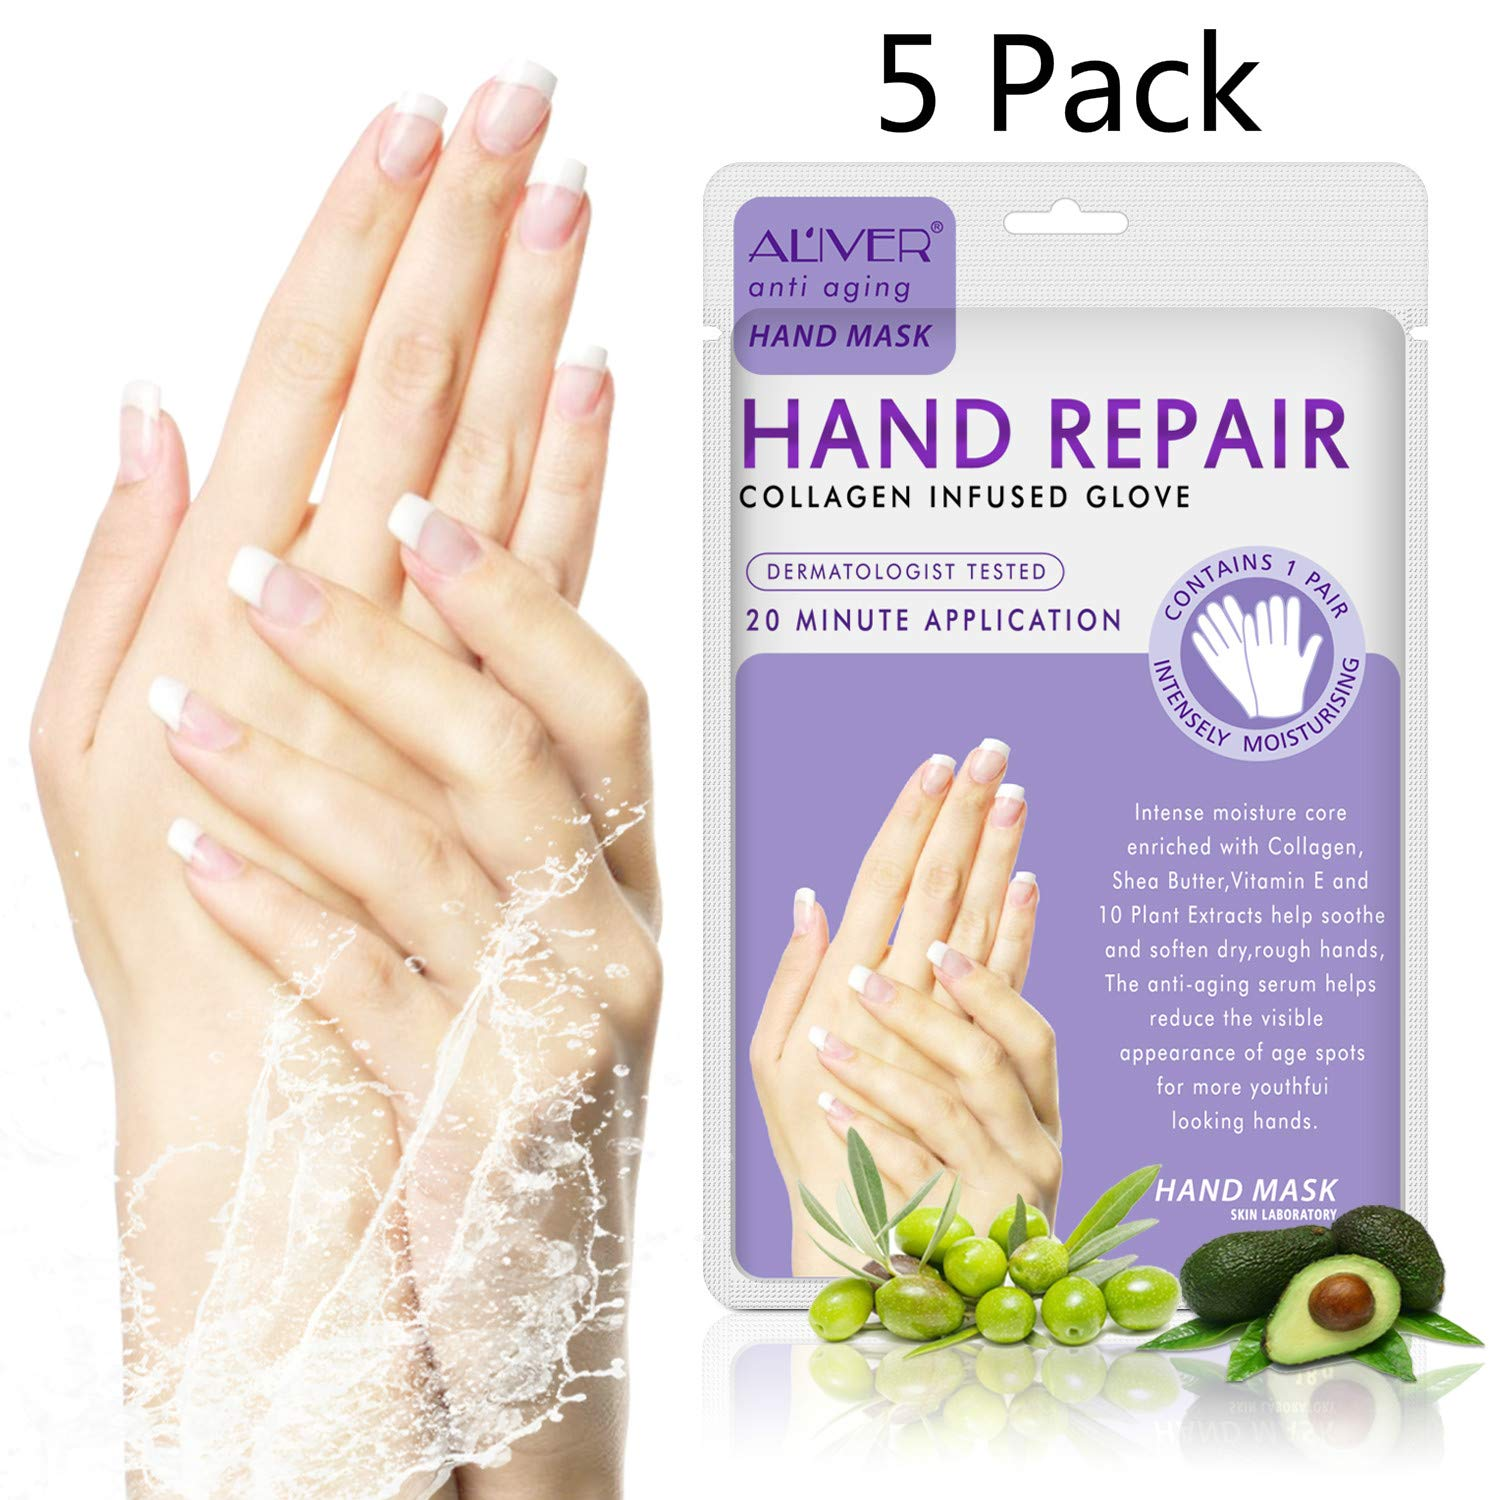 5 Pairs Hands Moisturizing Gloves, Hand Skin Repair Renew Mask w/Infused Collagen, Vitamins + Natural Plant Extracts for Dry, Aging, Cracked Hands (5 Pairs Hand mask)